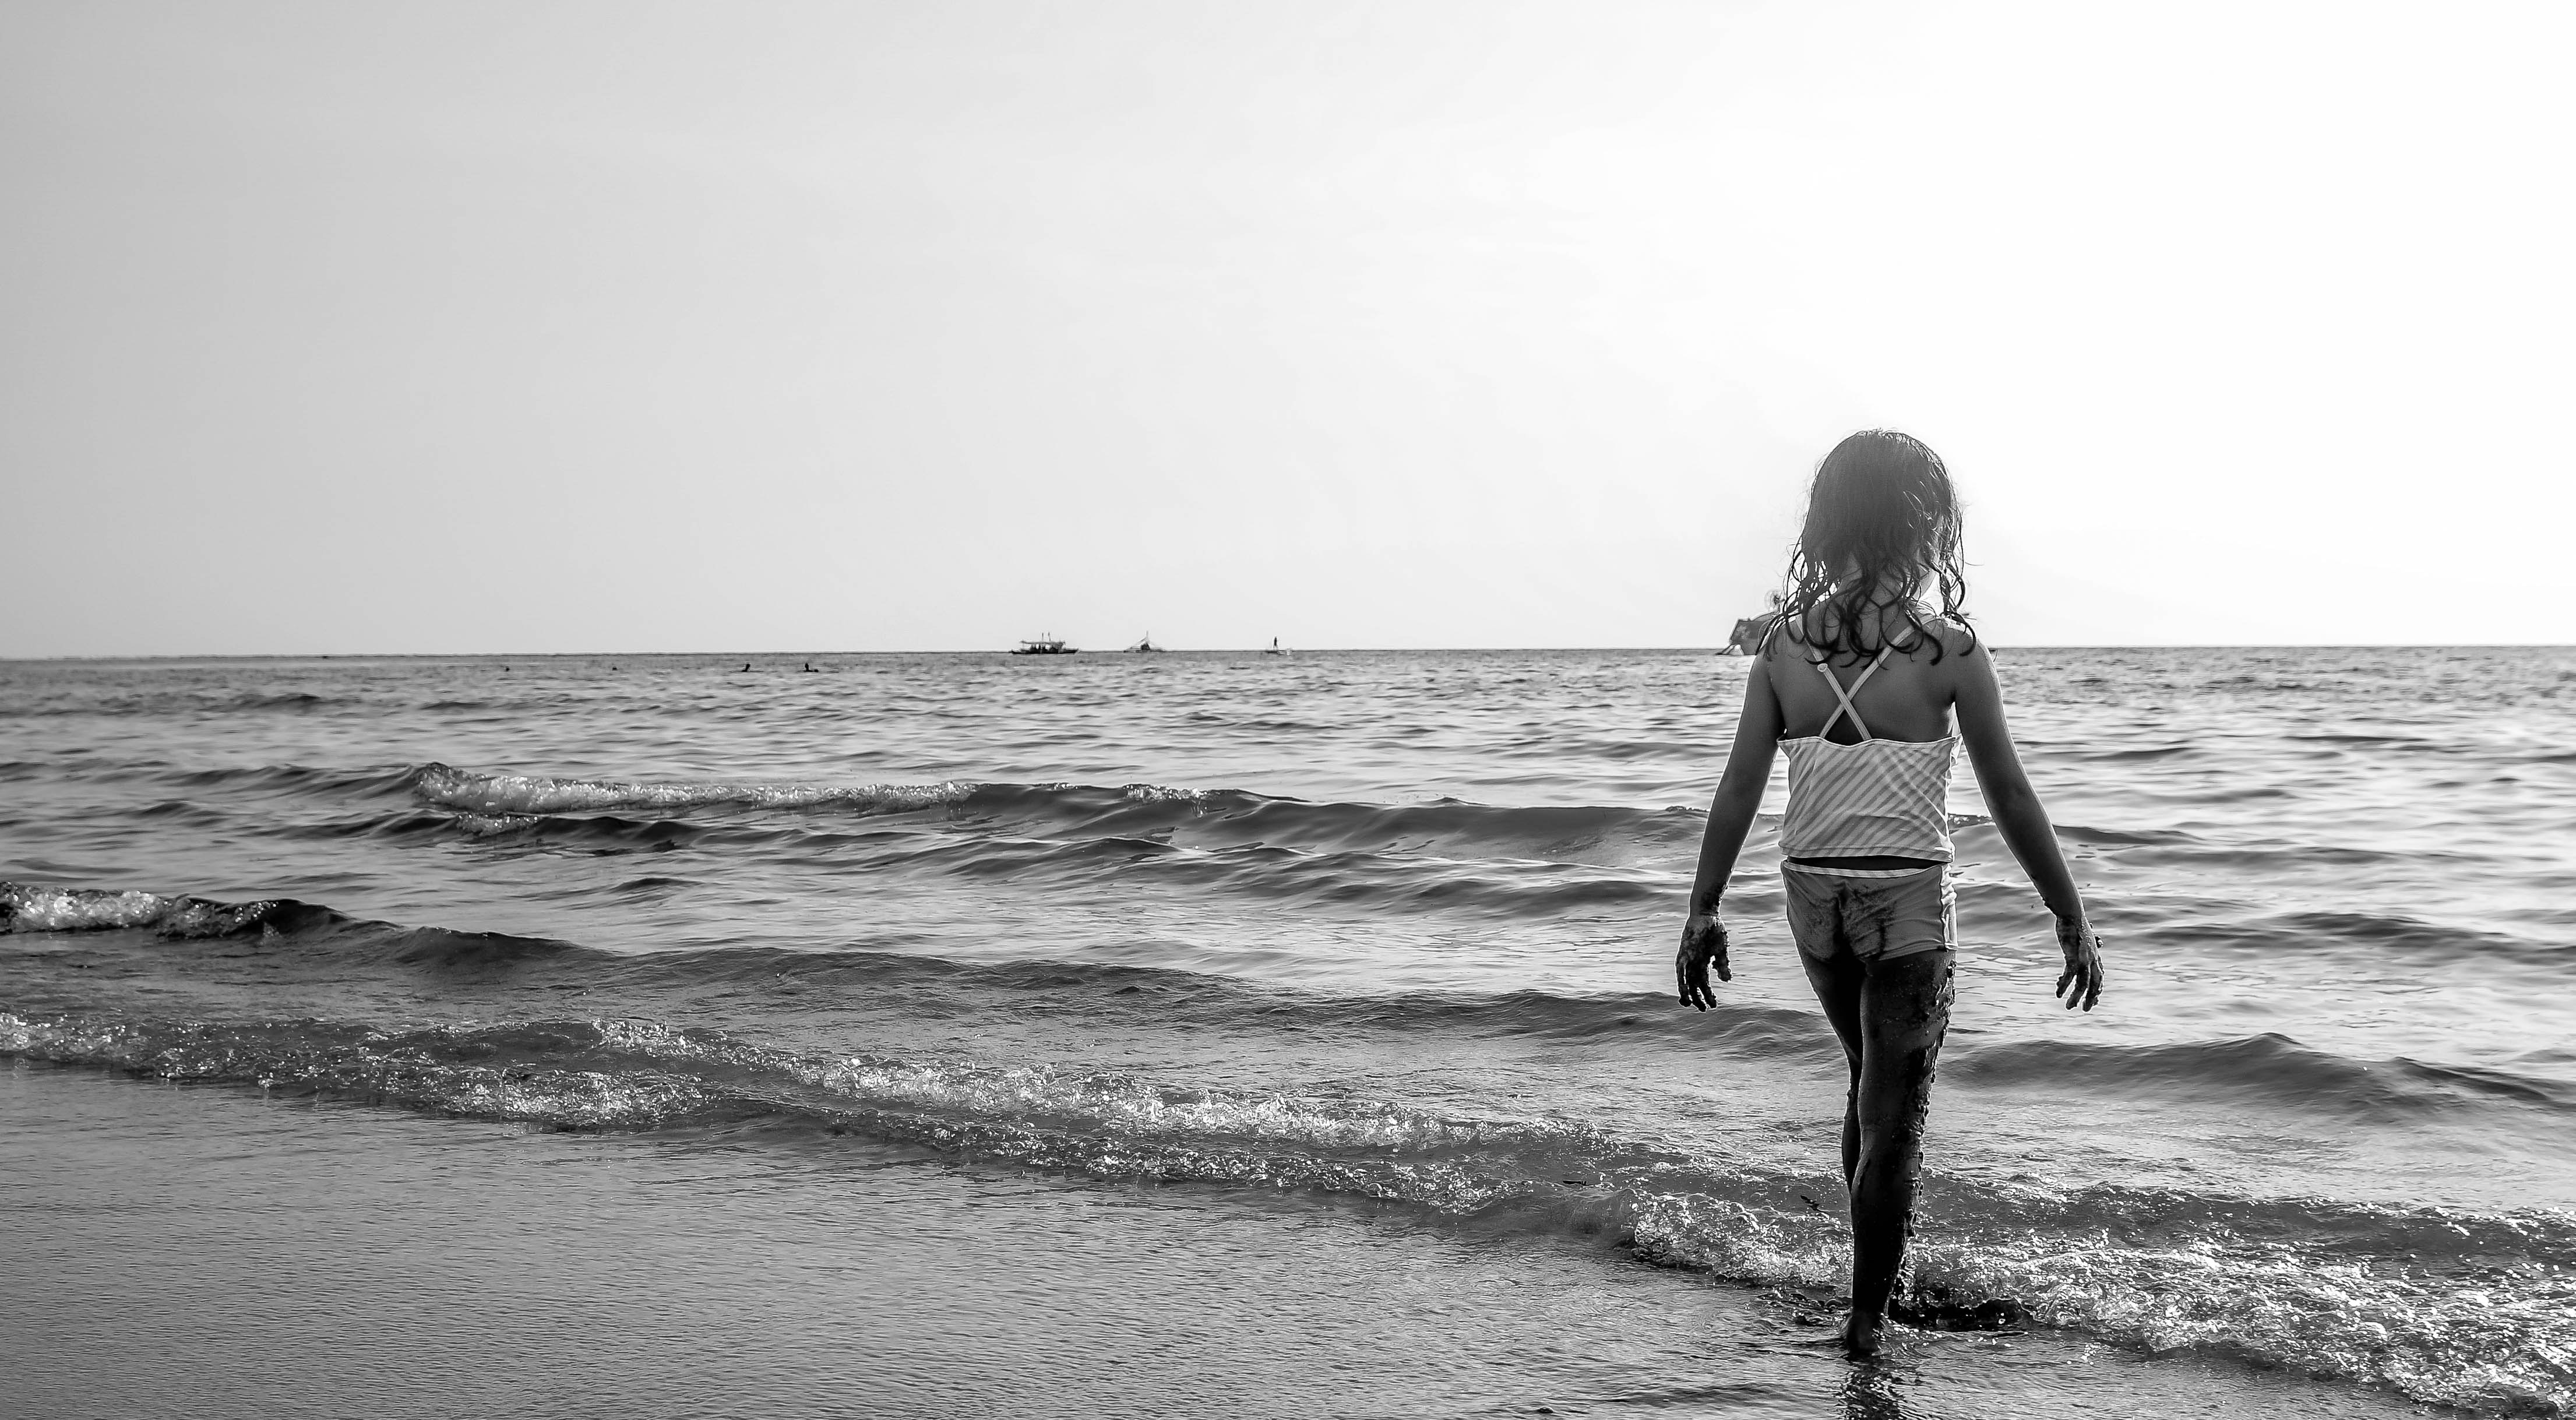 Grayscale Photo of Girl Walking on Seashore With White Spaghetti Strap Top, Beach, Sea, Waves, Water, HQ Photo